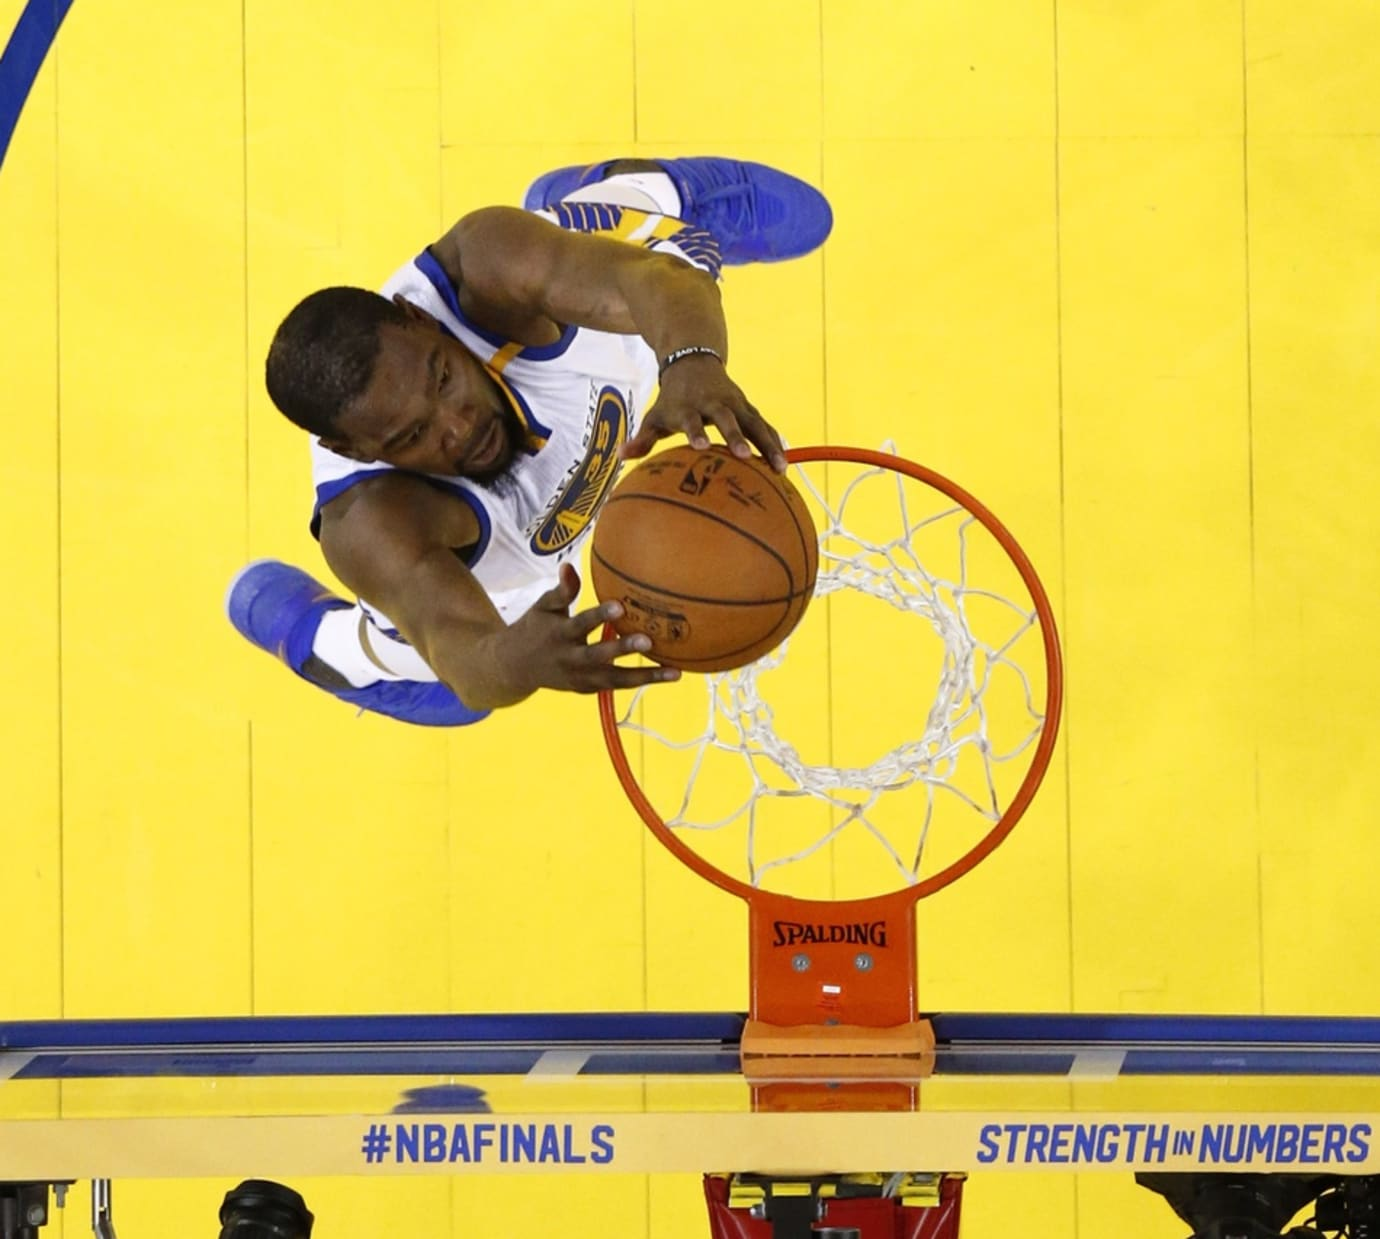 Kevin Durant Nike KD 10 Game 5 adf4ea3a8